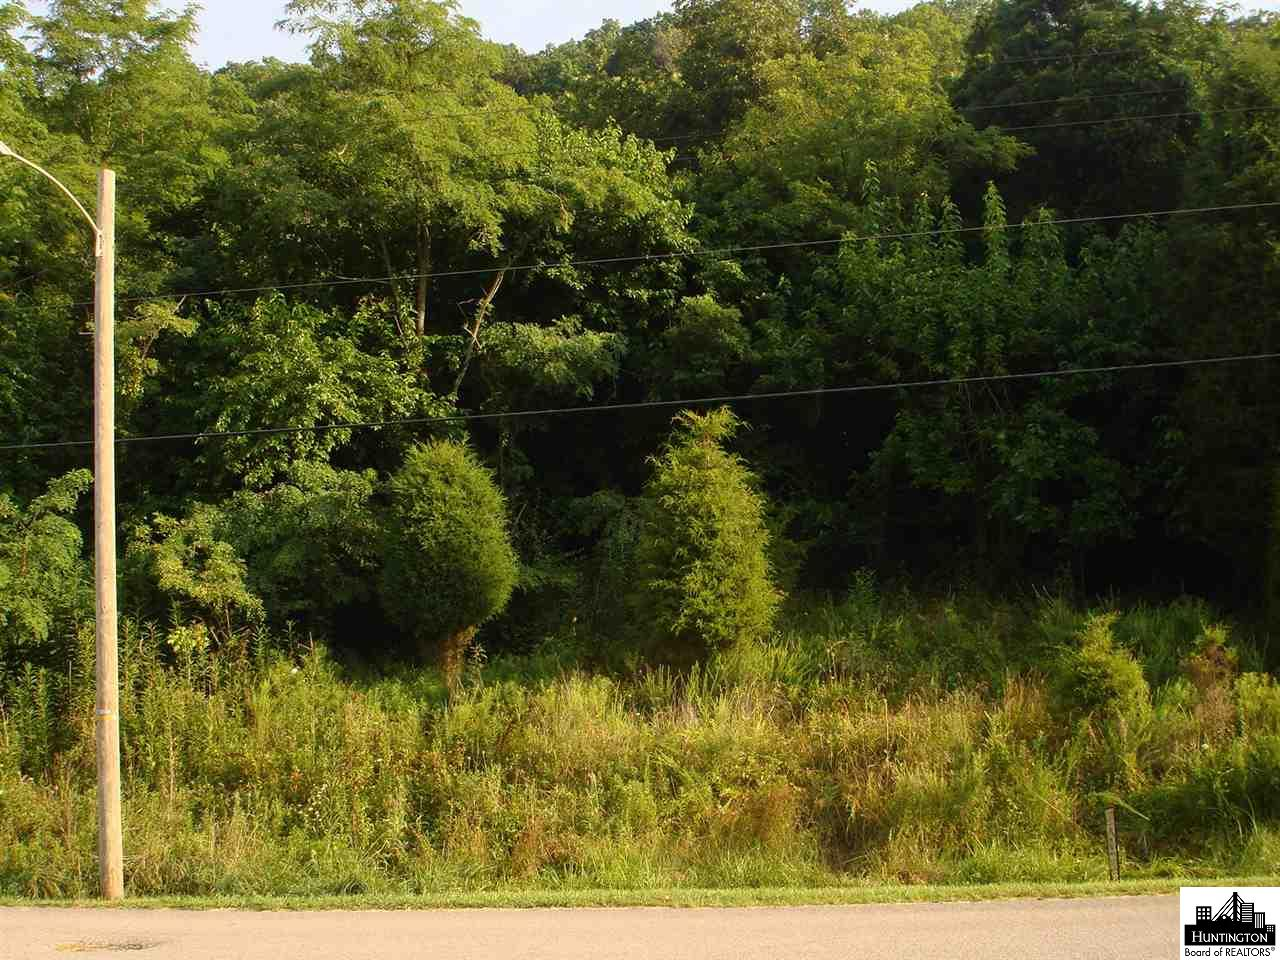 primary photo for 6 Williamsburg Drive - Lot, Barboursville, WV 25504, US